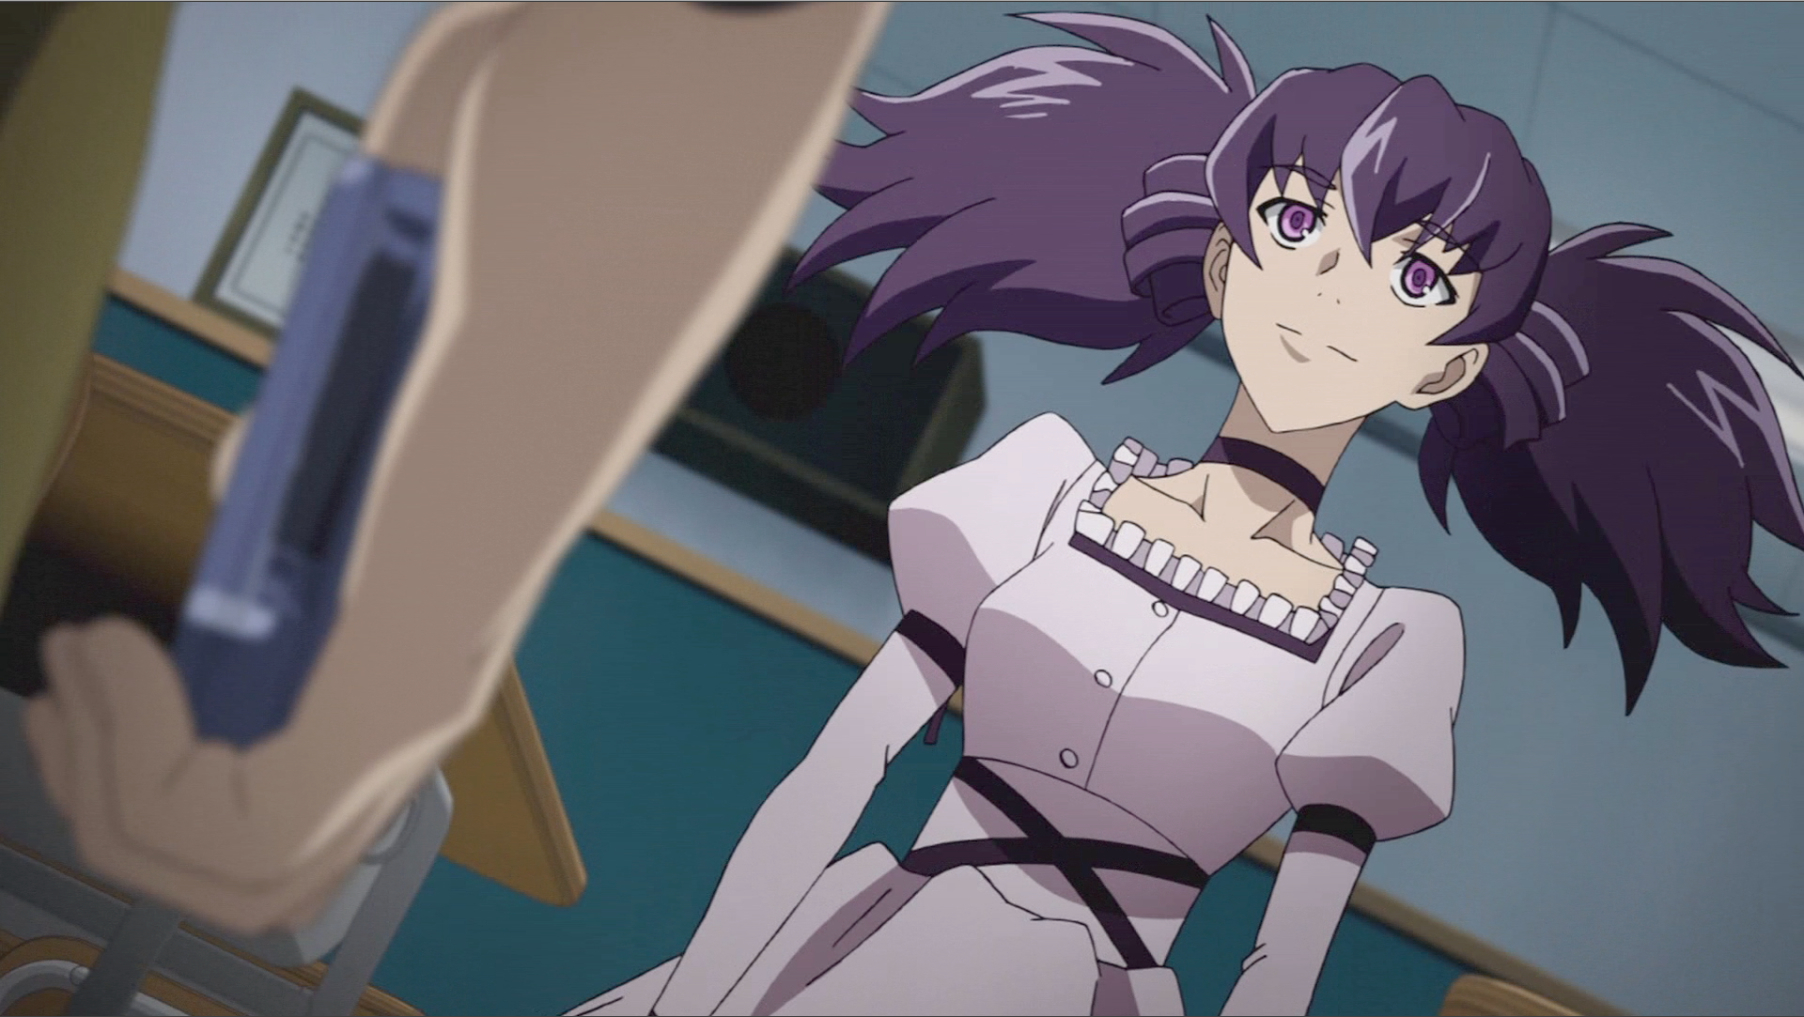 Watch The Future Diary Season 1 Episode 2 Anime Uncut on